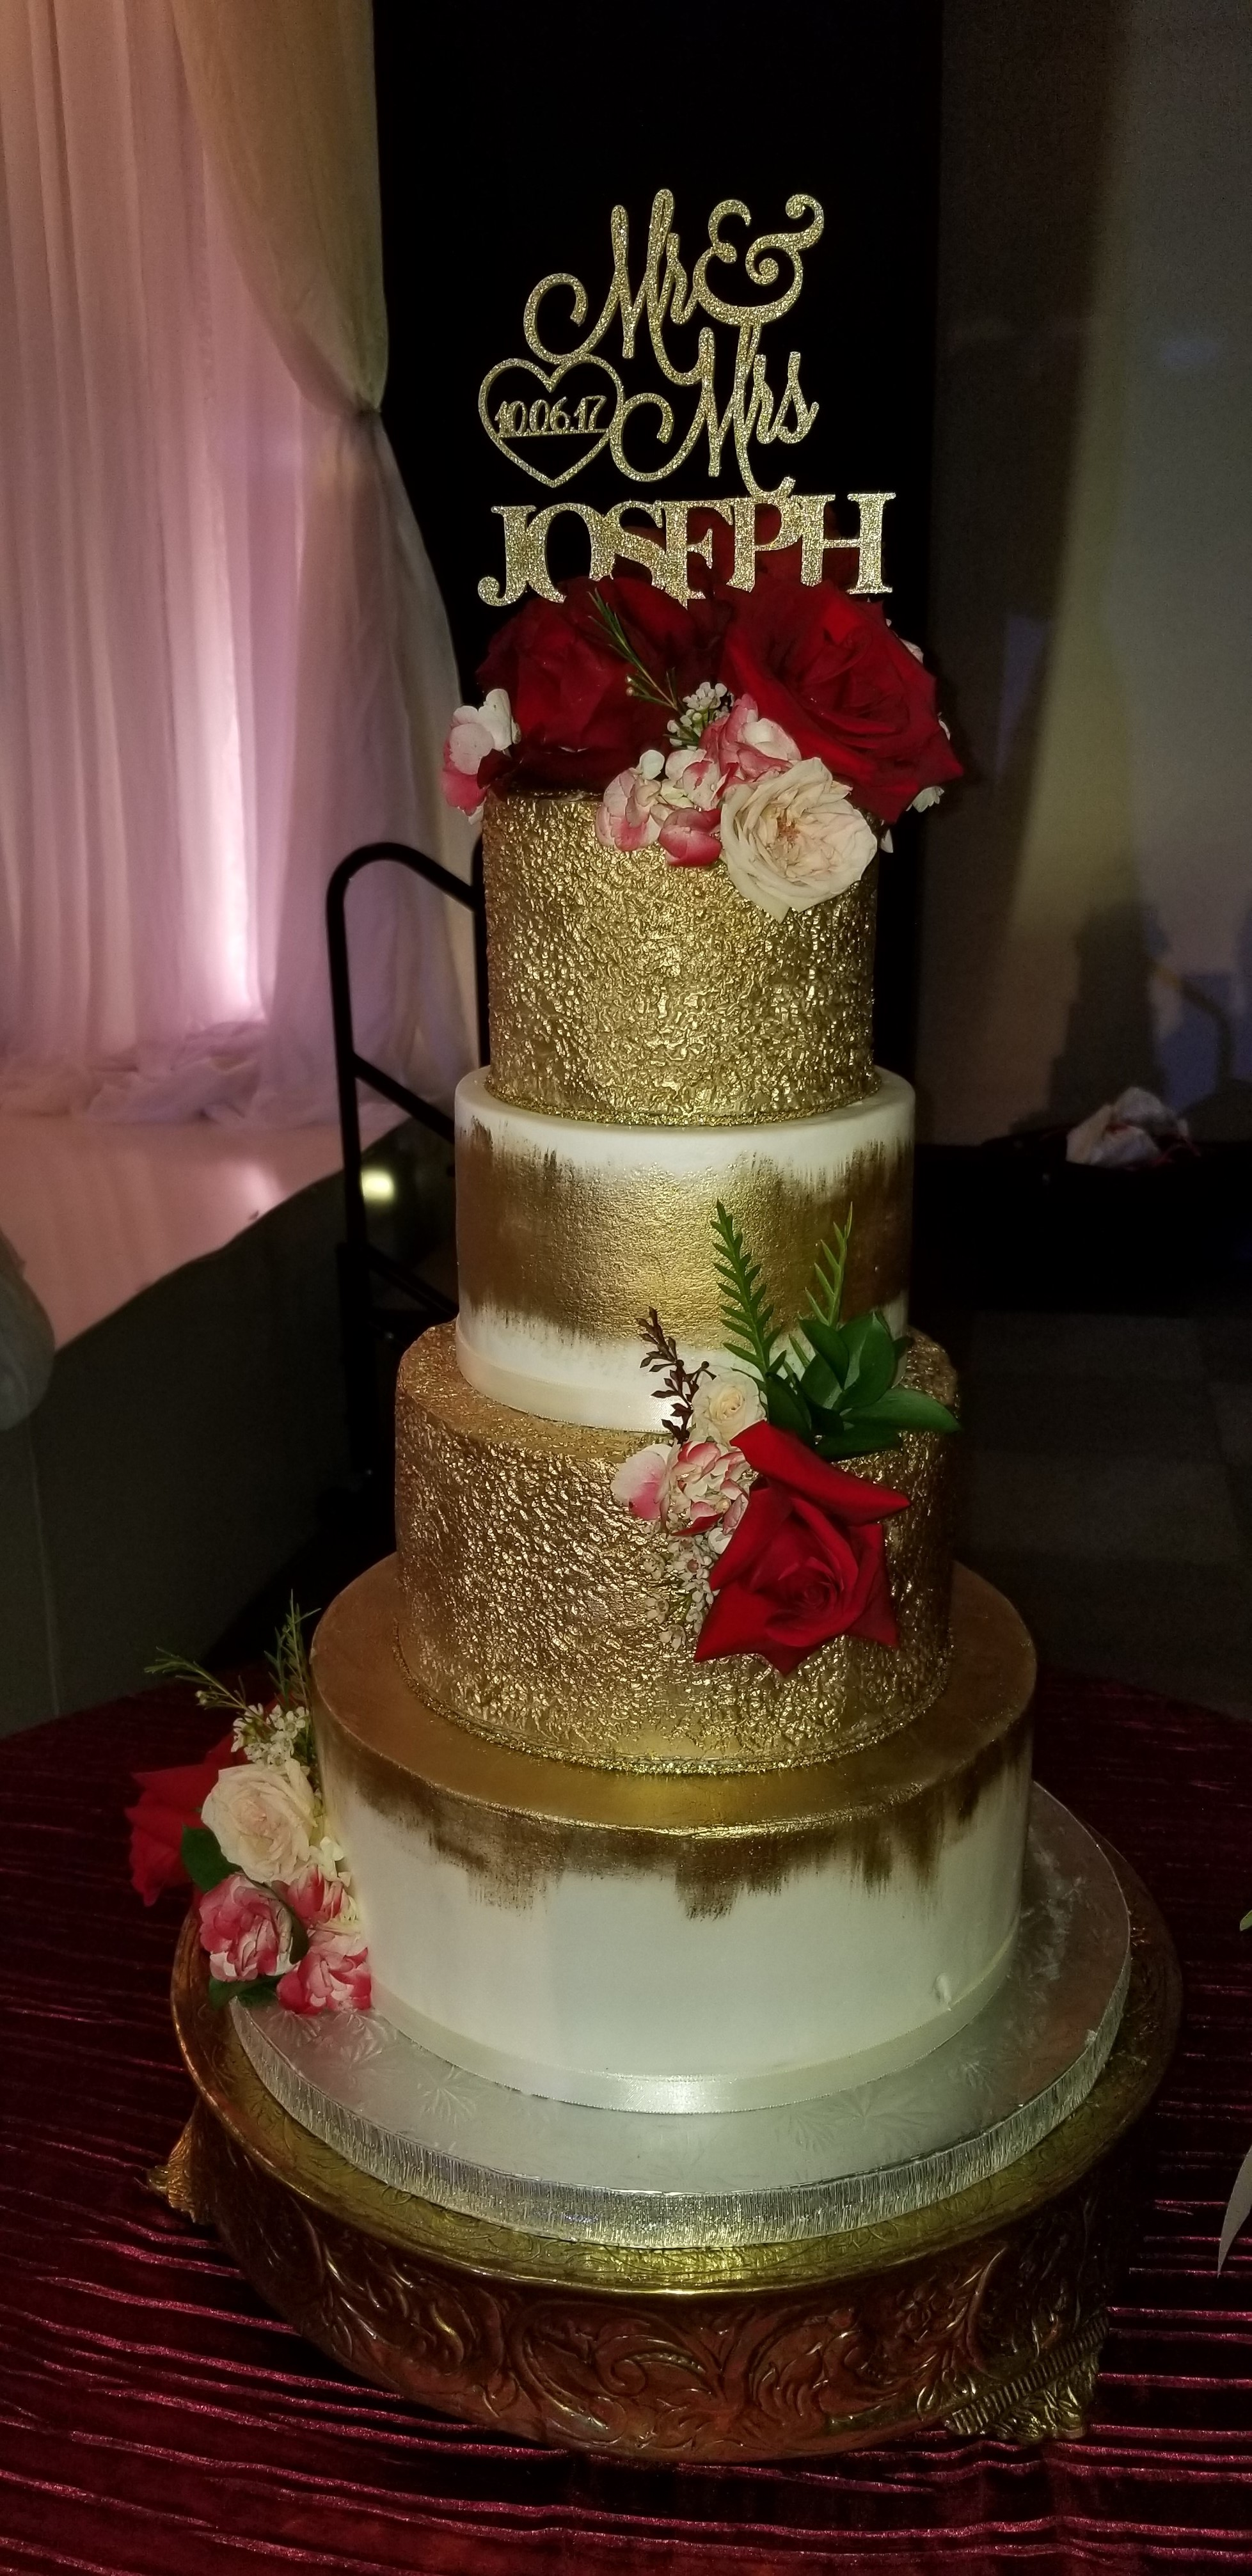 cupcake wedding cakes houston tx wedding cakes by tammy allen houston 13174